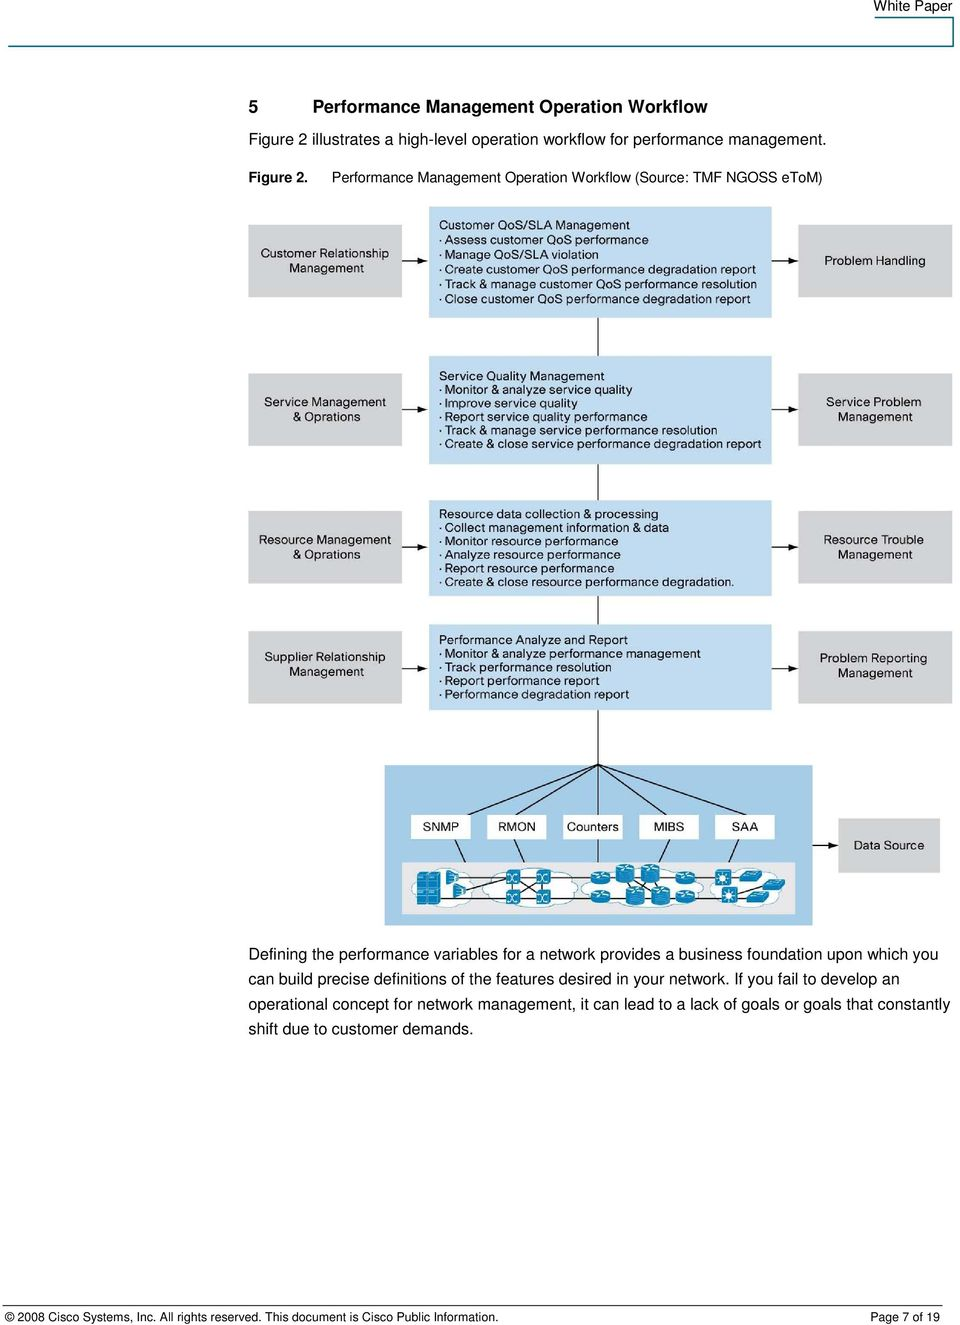 Performance Management Operation Workflow (Source: TMF NGOSS etom) Defining the performance variables for a network provides a business foundation upon